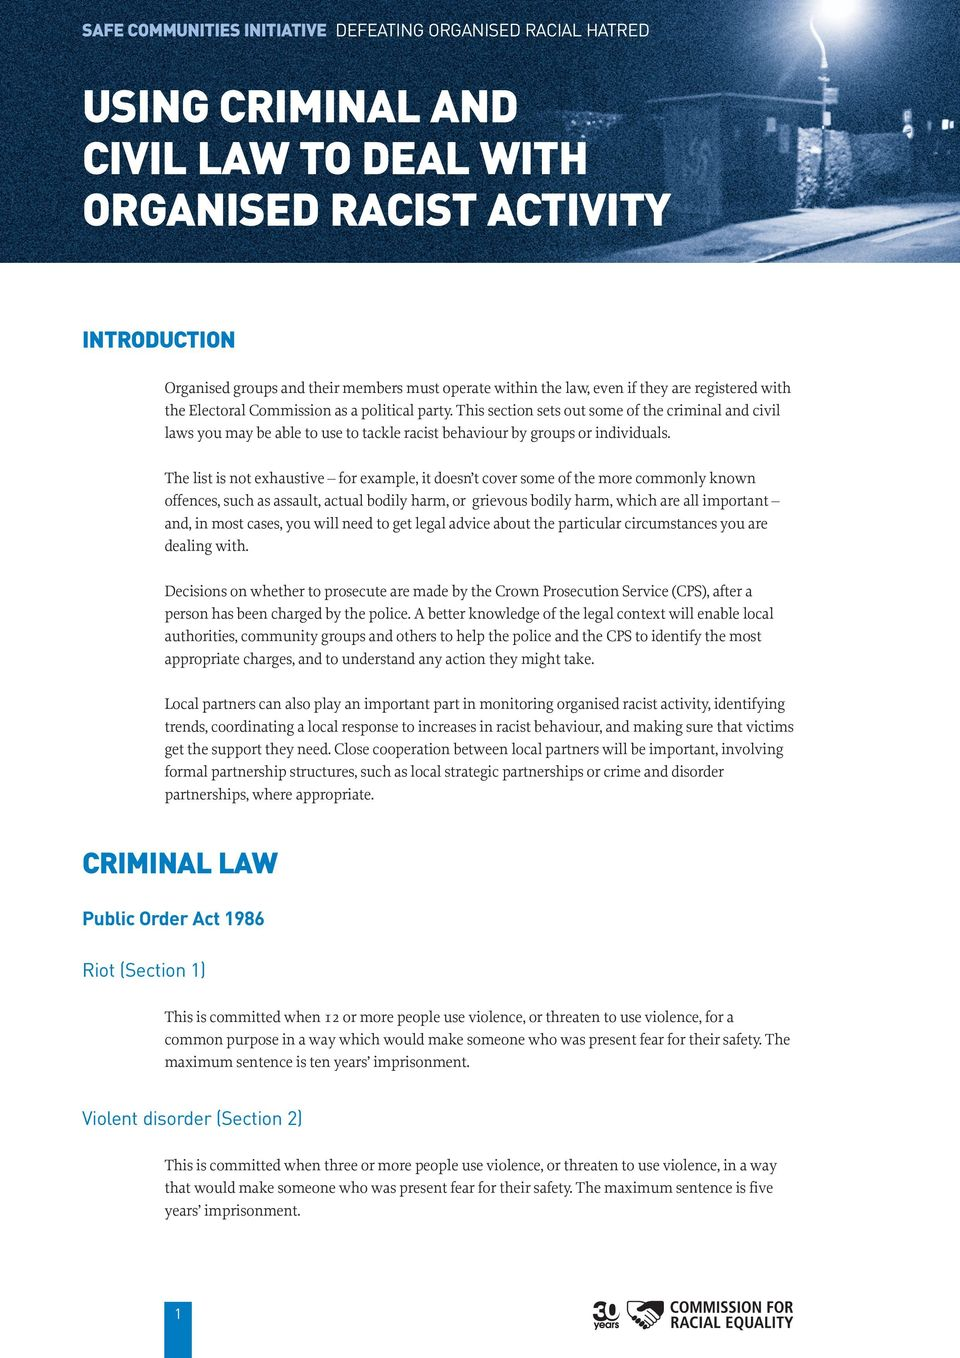 This section sets out some of the criminal and civil laws you may be able to use to tackle racist behaviour by groups or individuals.